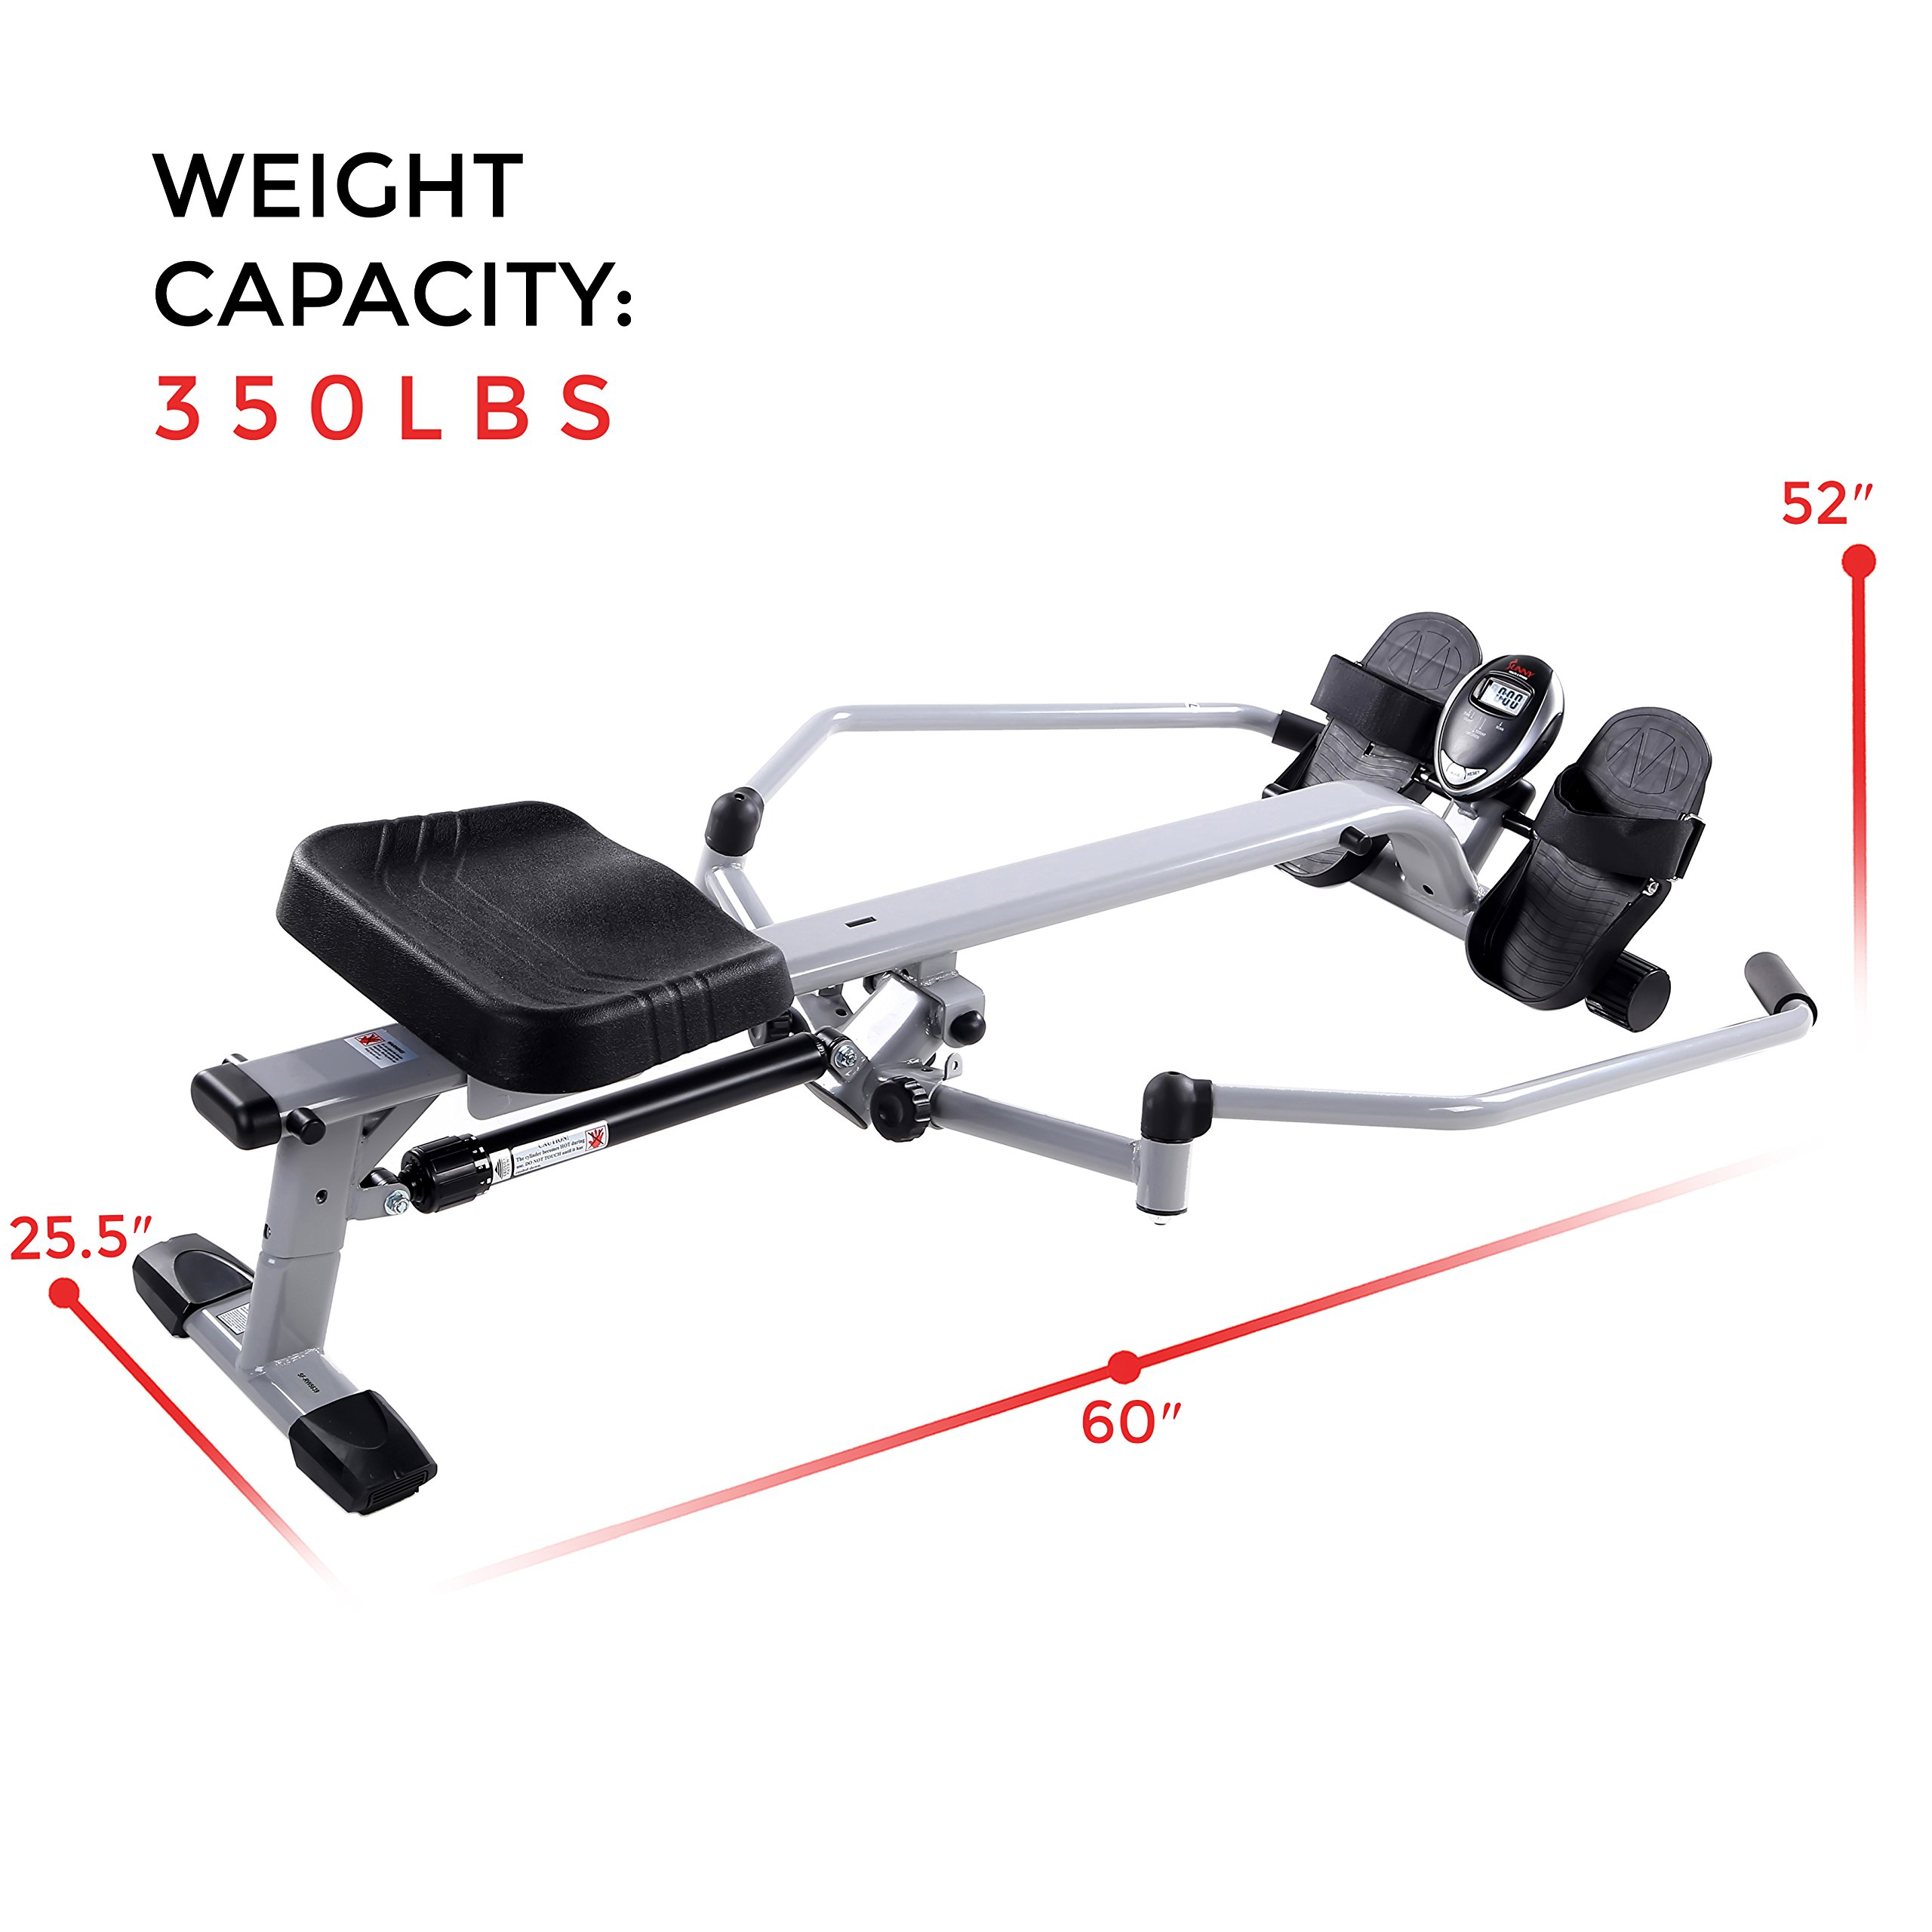 Sunny Health & Fitness SF-RW5639 Full Motion Rowing Machine Rower w/ 350 lb Weight Capacity and LCD Monitor by Sunny Health & Fitness (Image #16)